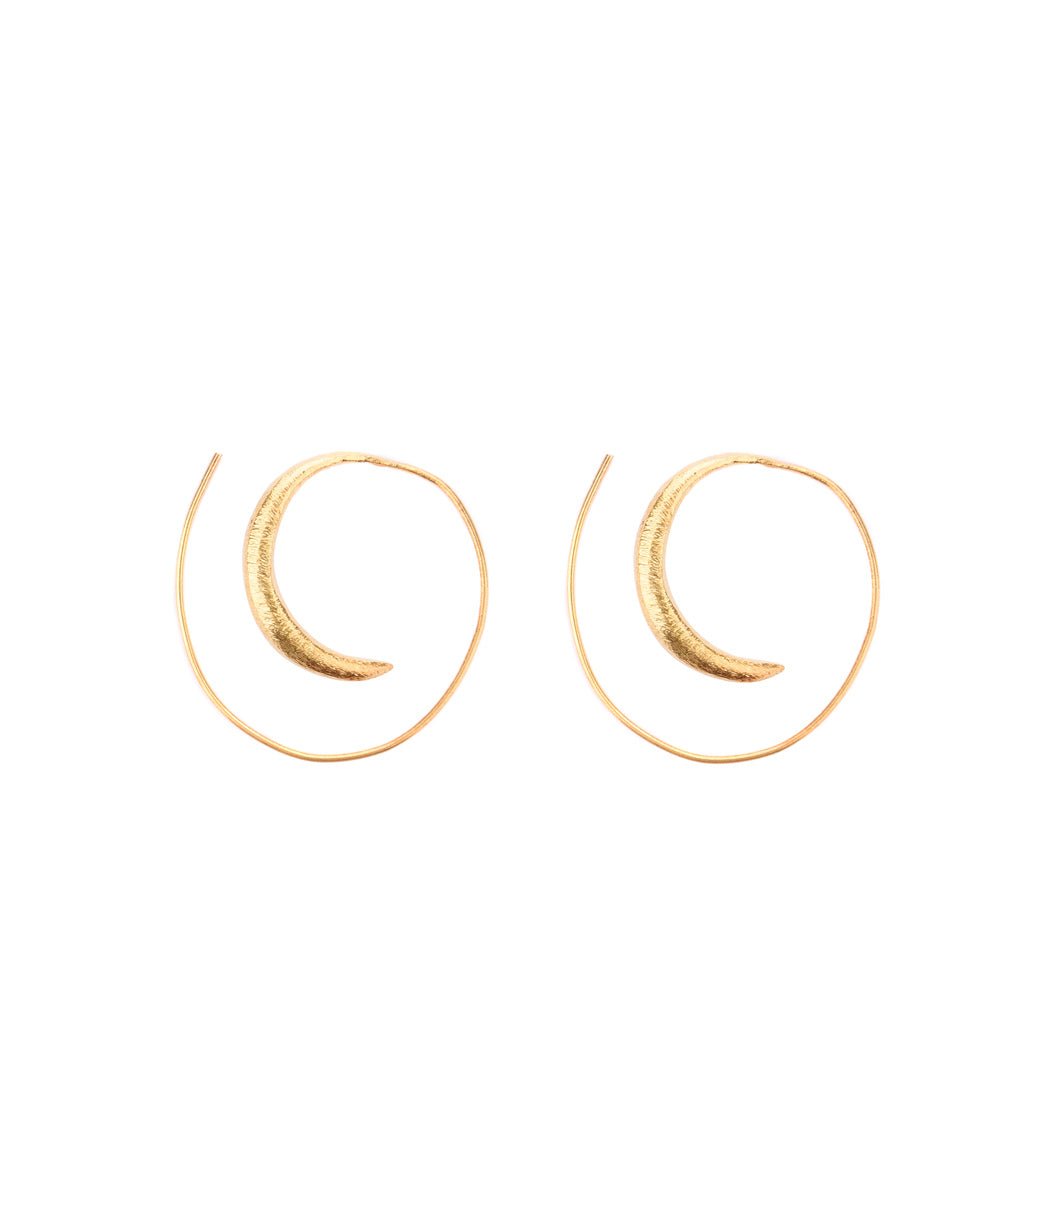 Helicoid Earrings